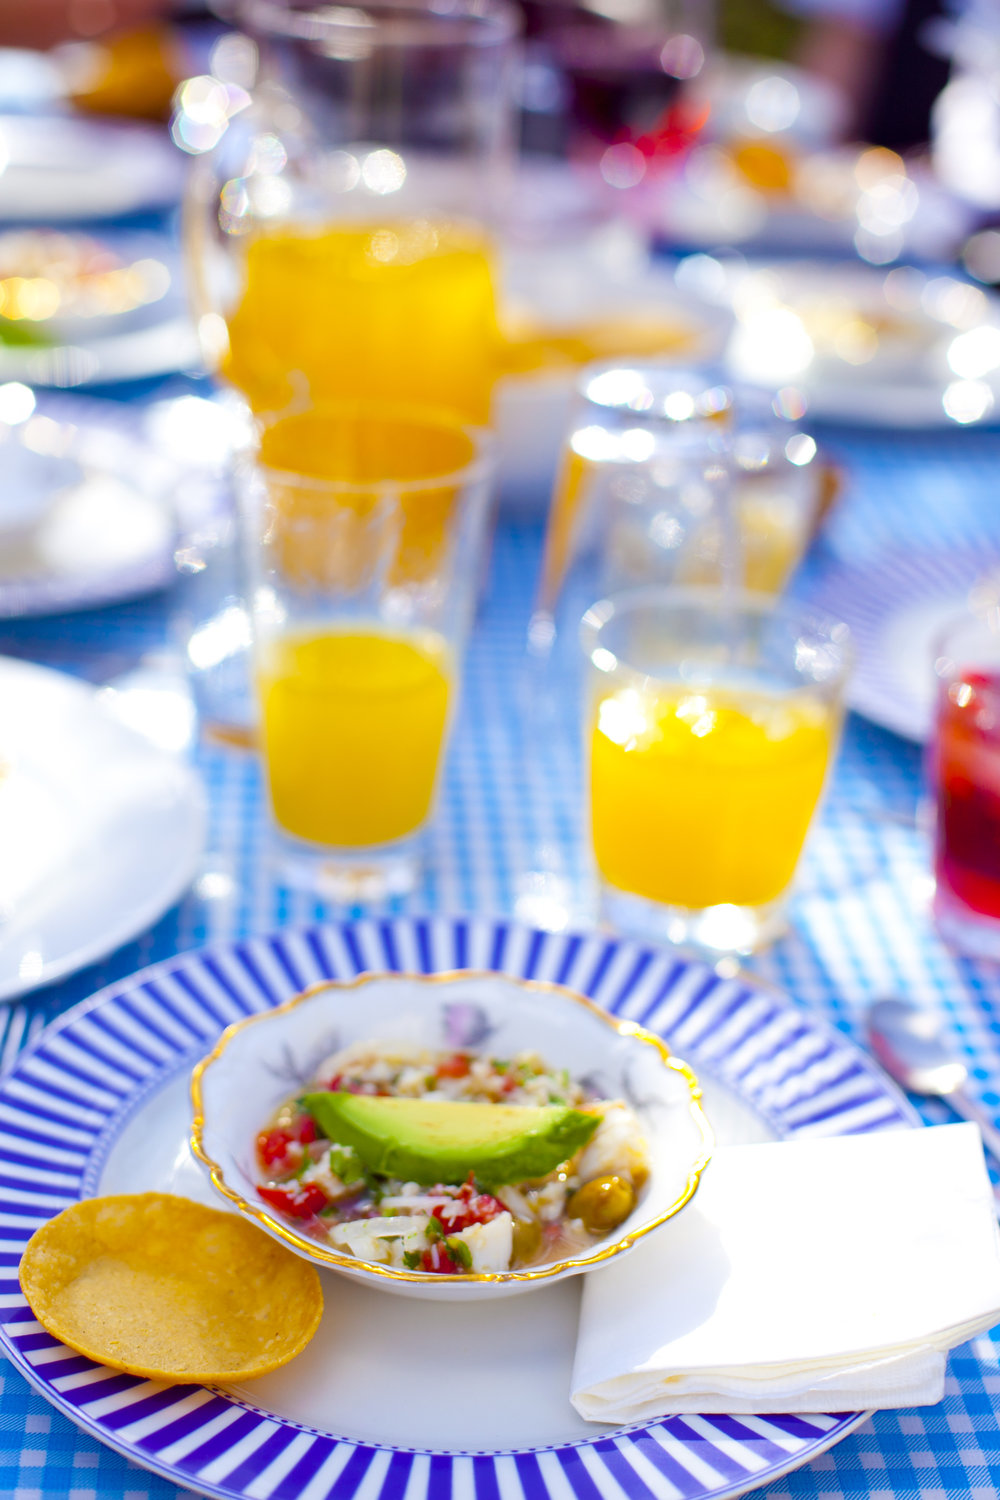 Copy of Ceviche Tostadas with fresh orange juice